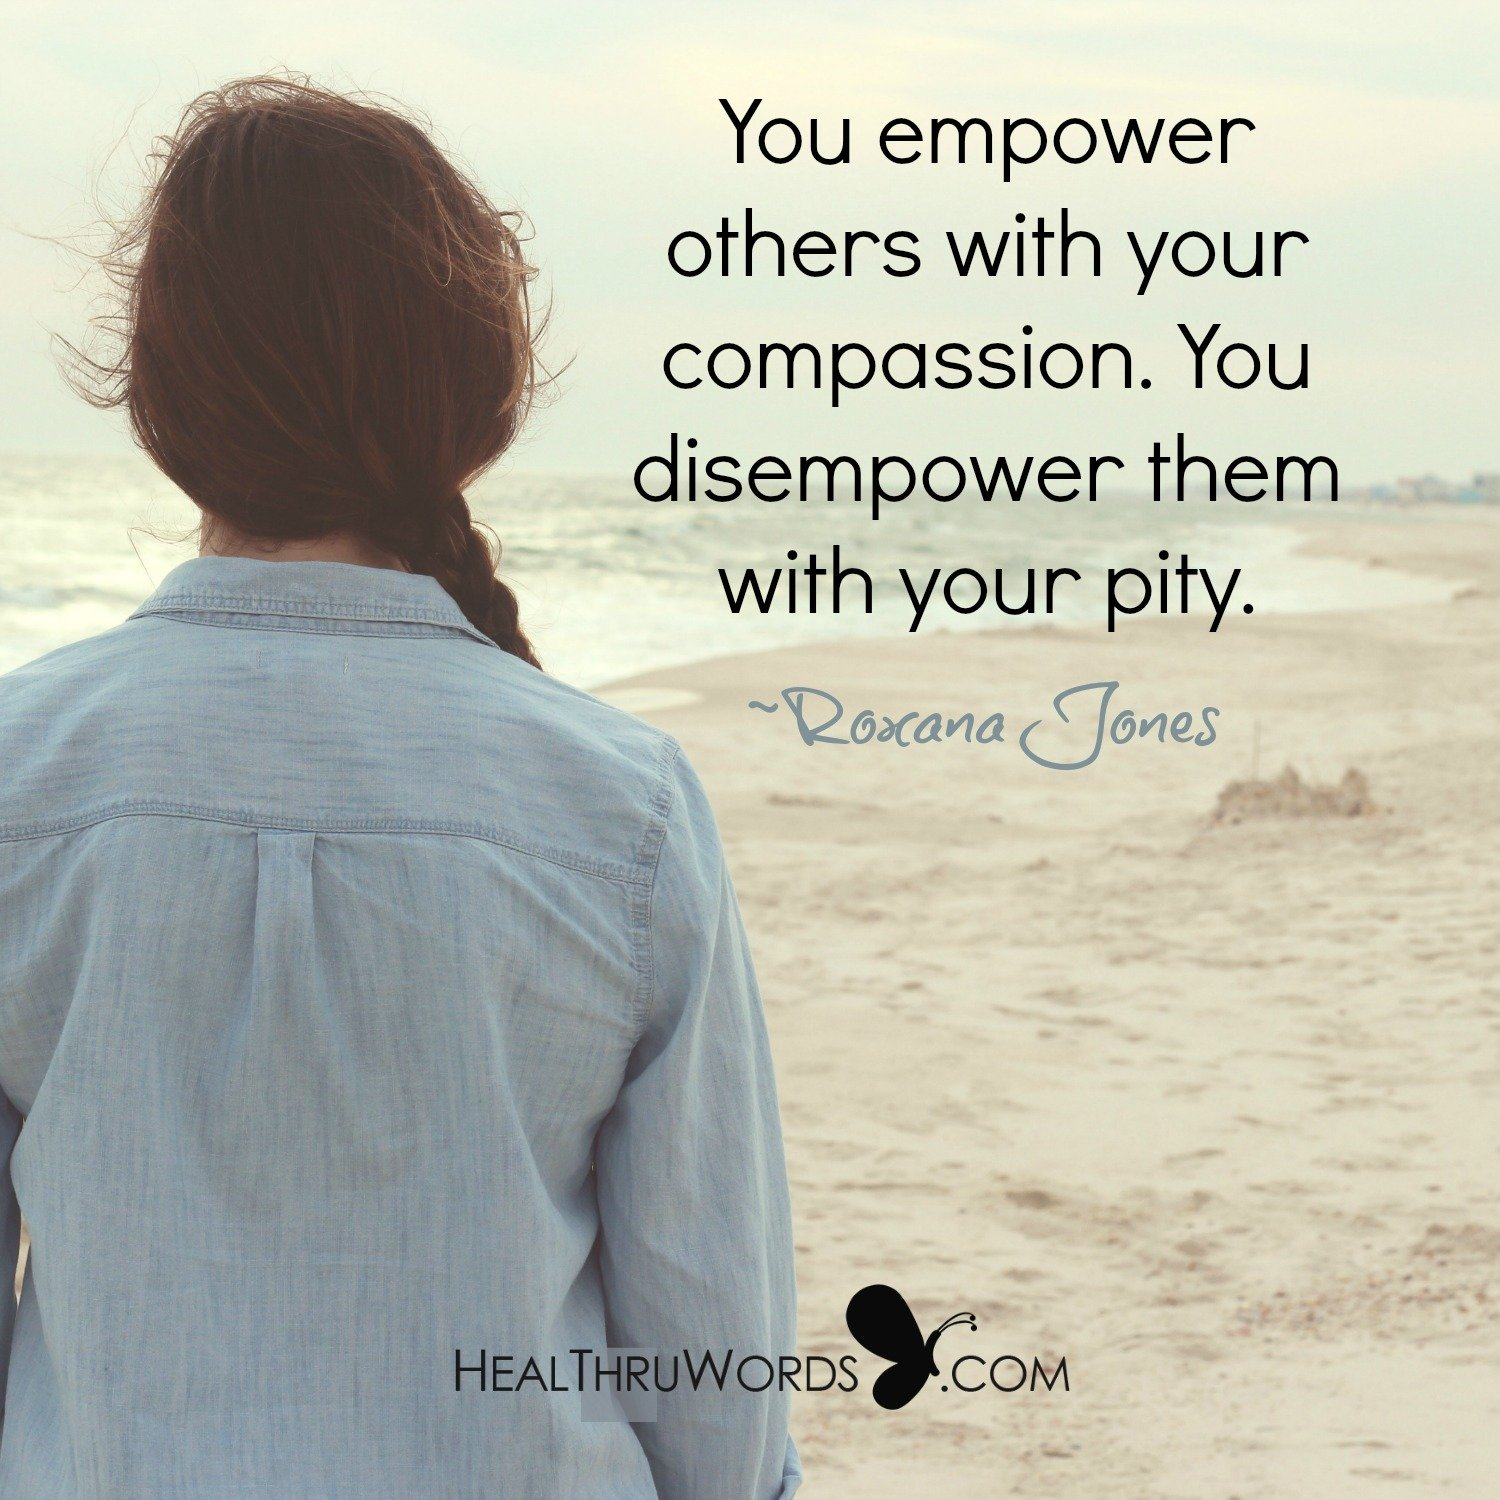 Inspirational Image: Empowering Through Compassion